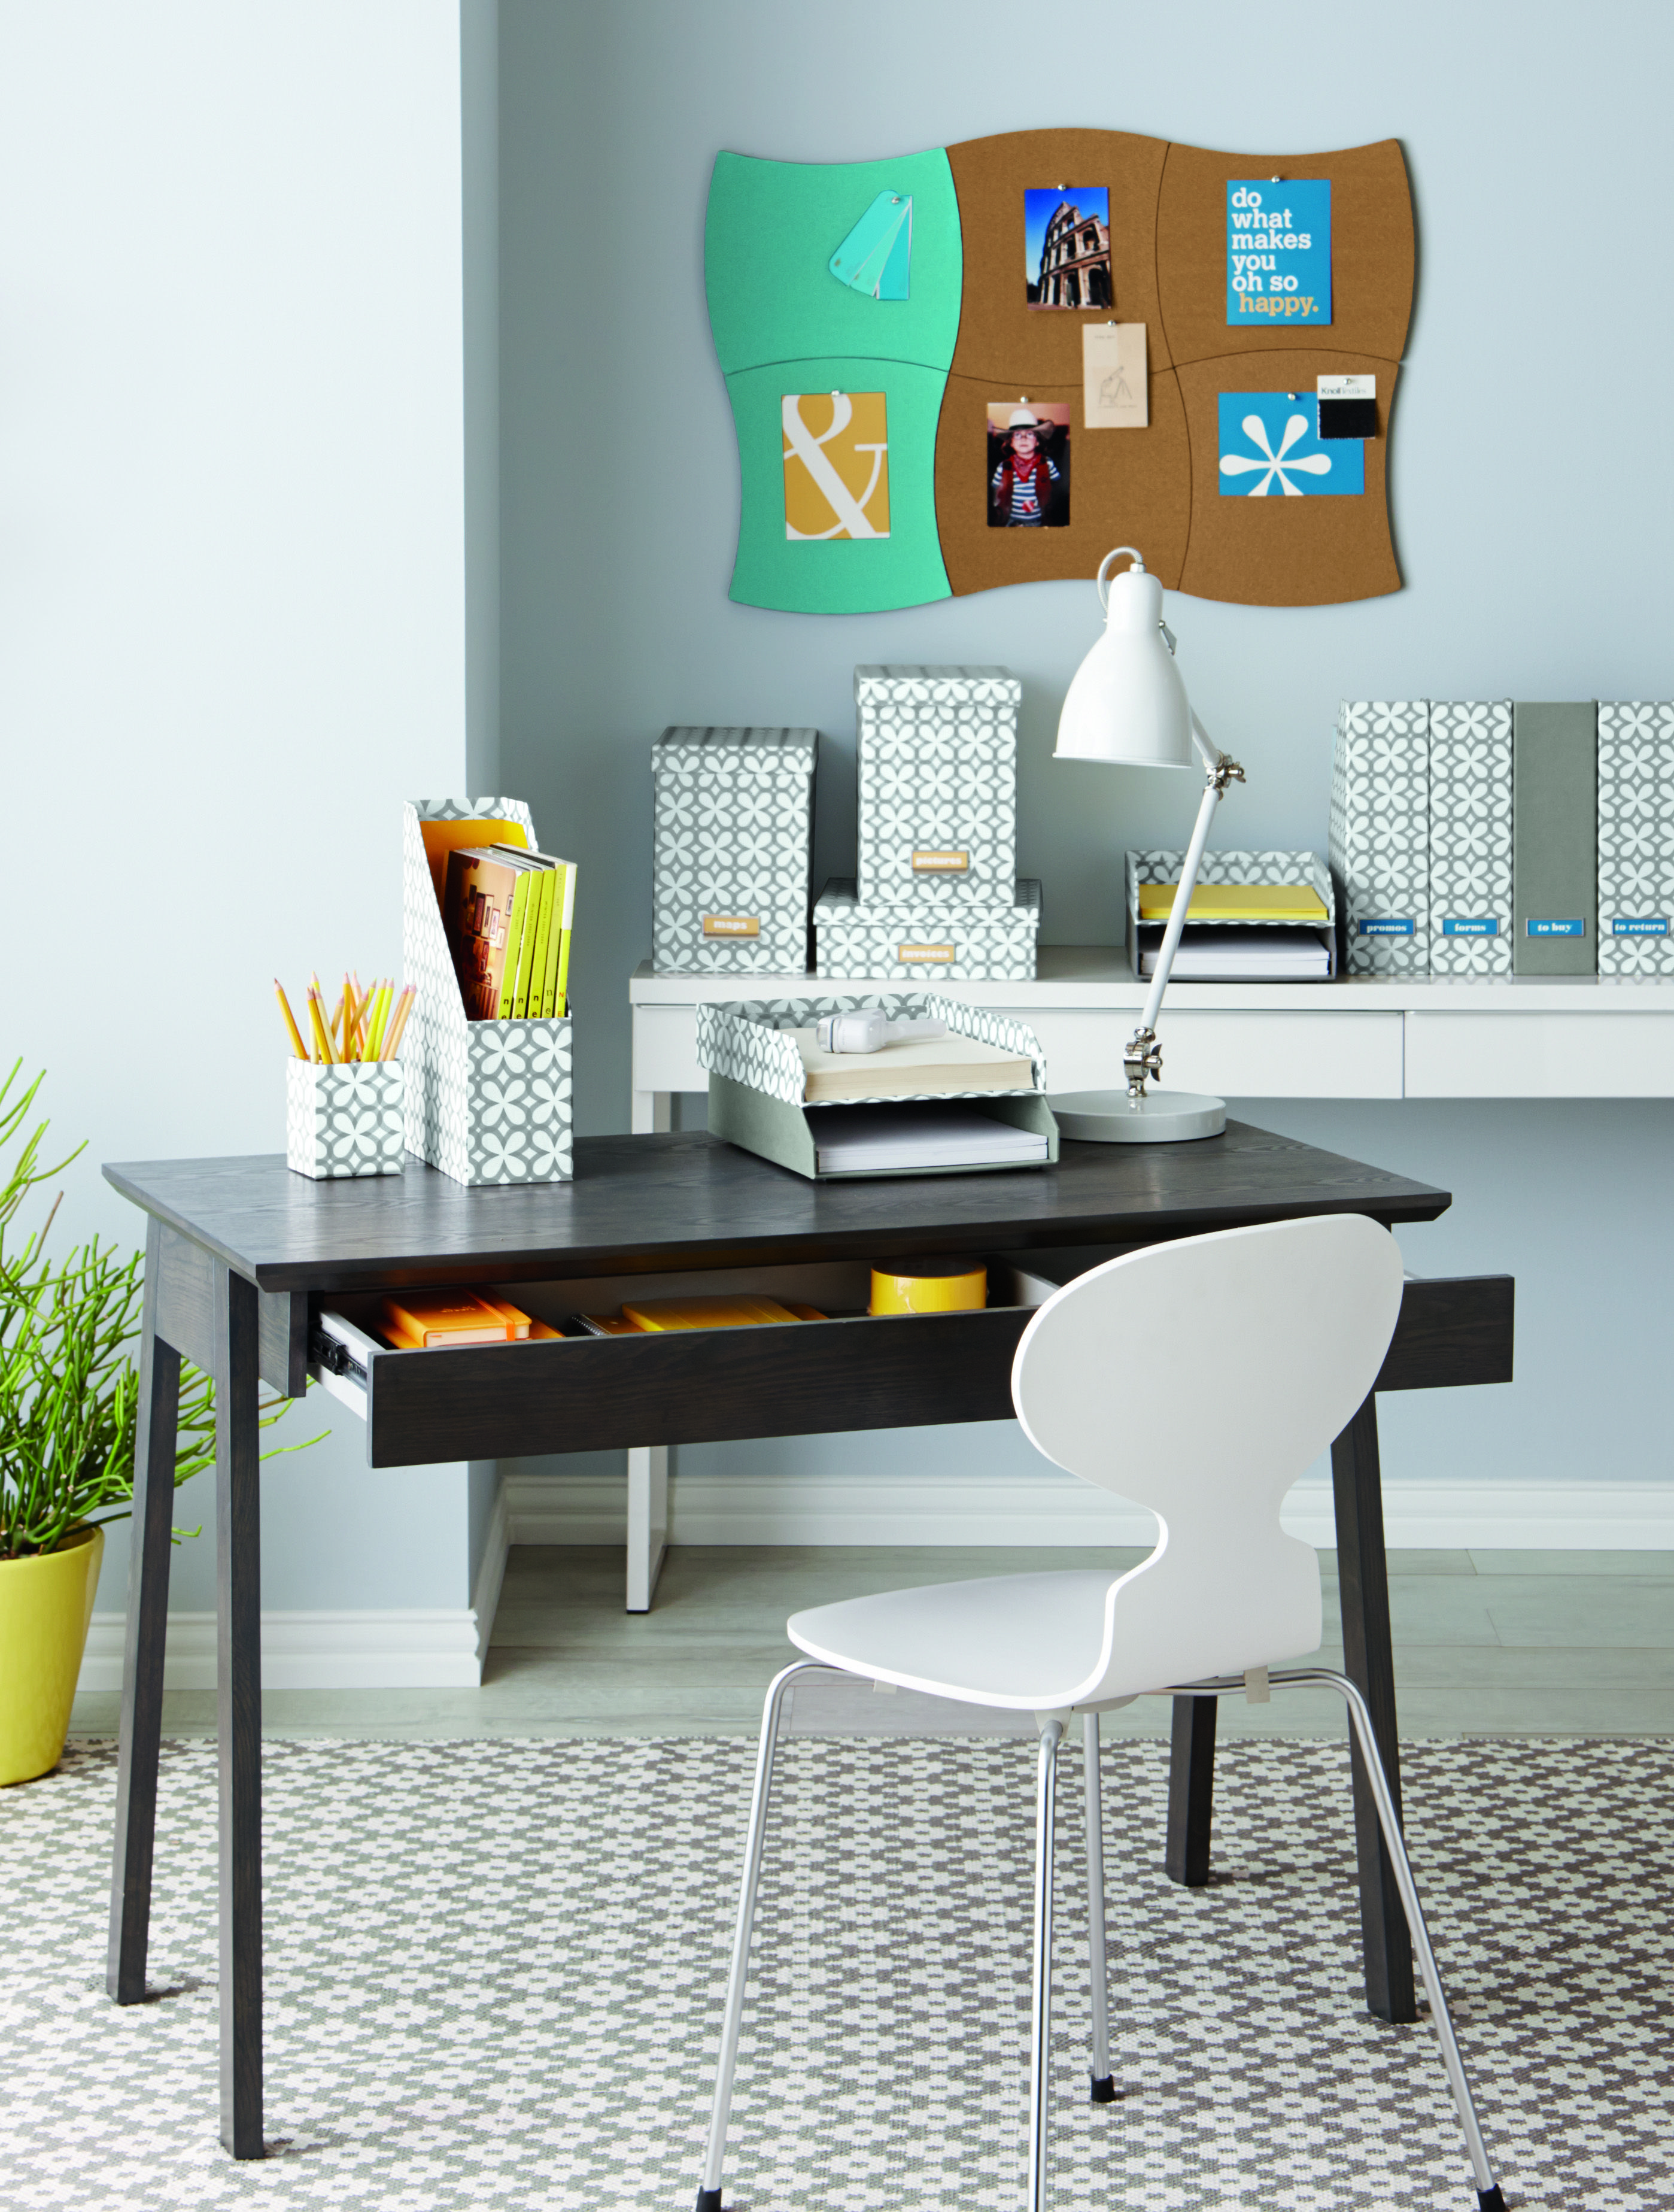 Our Caché Desk Works Beautifully In Tight Quarters Its Sleek